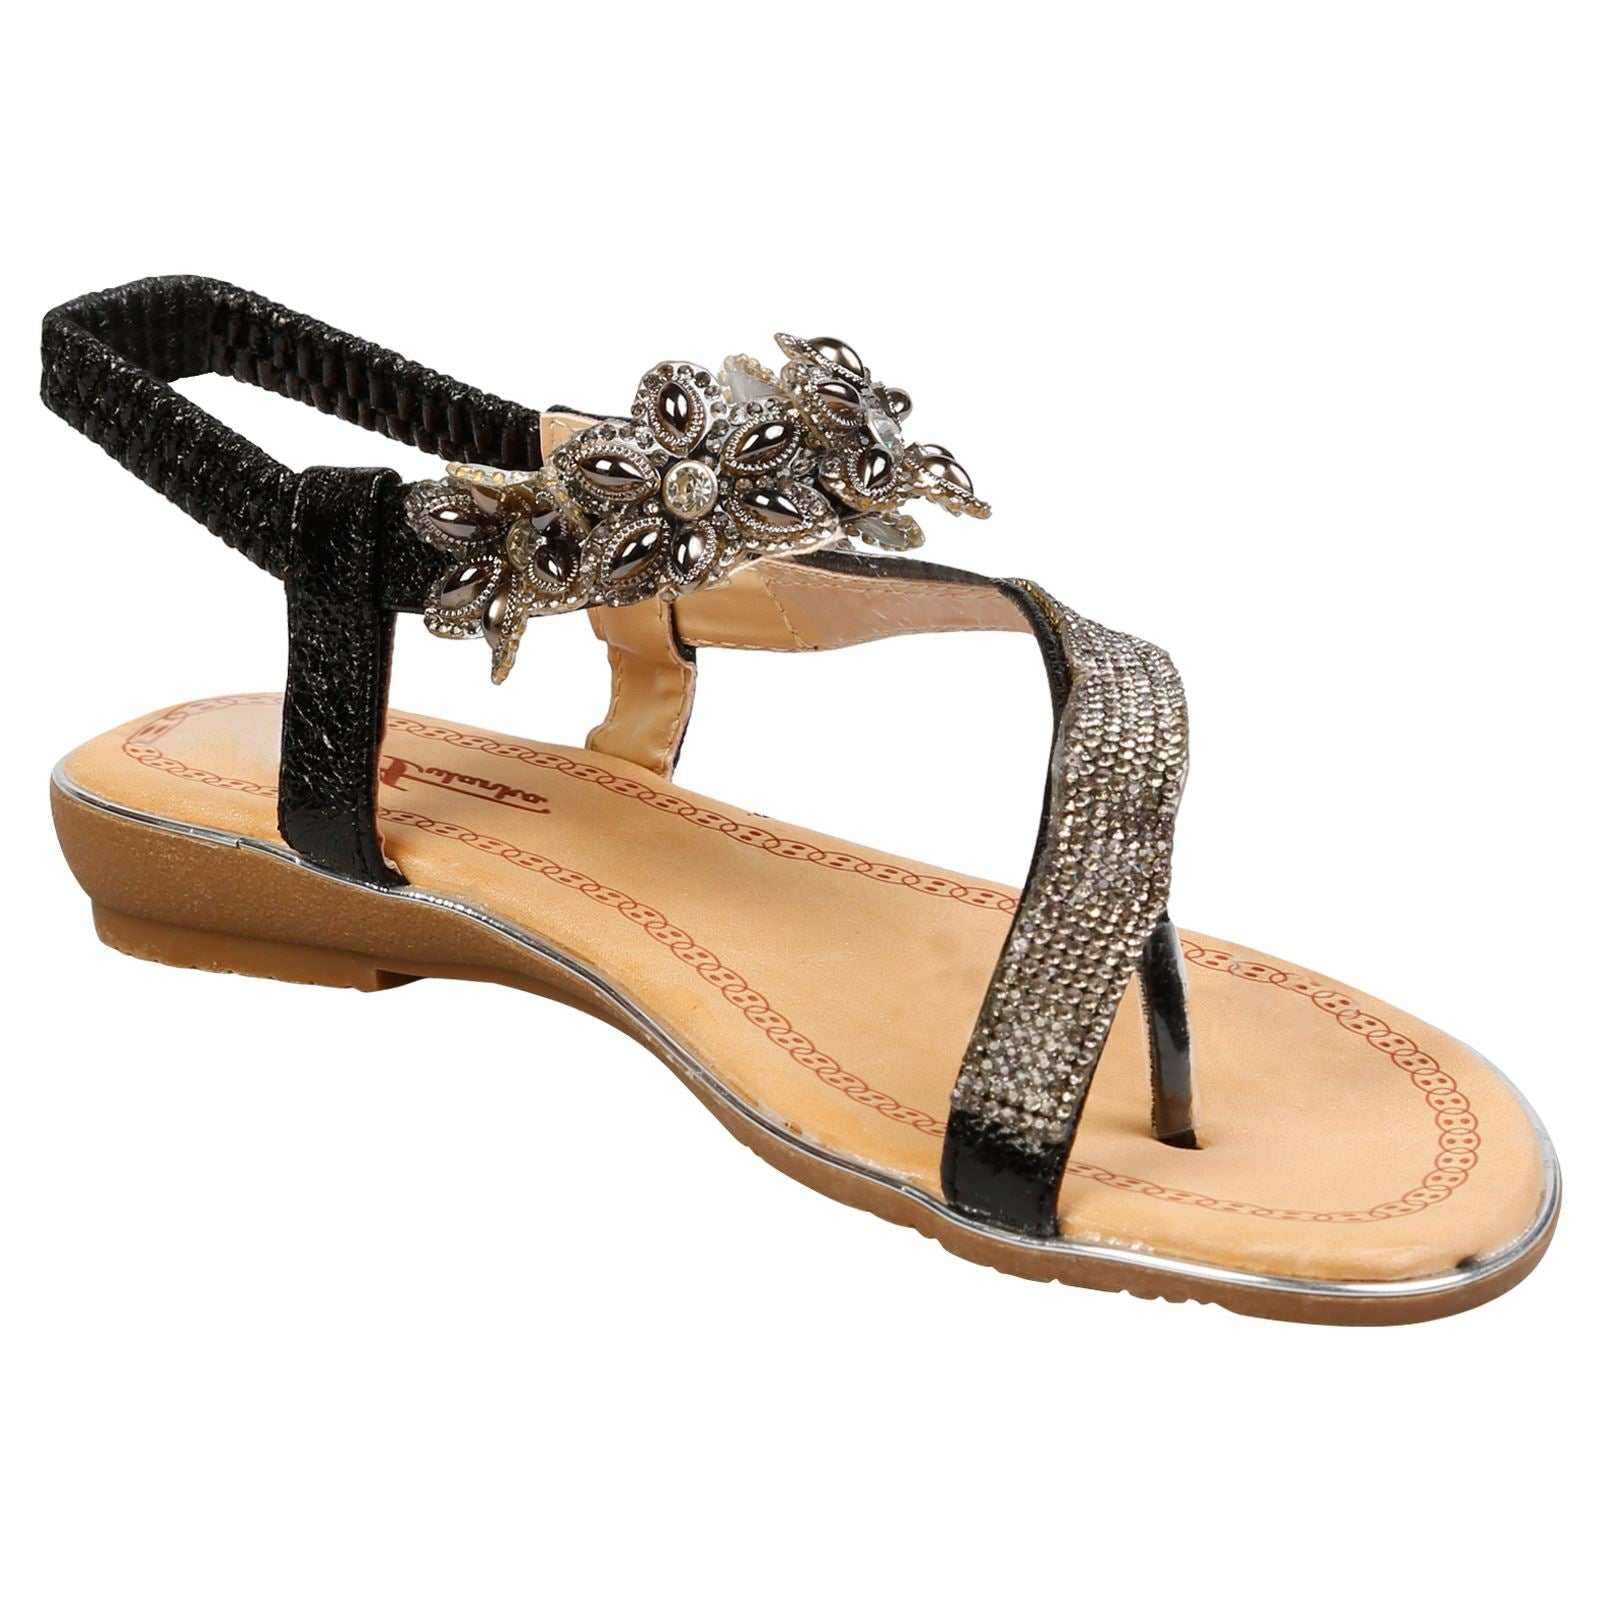 Celine Floral Diamante Sandals in Black